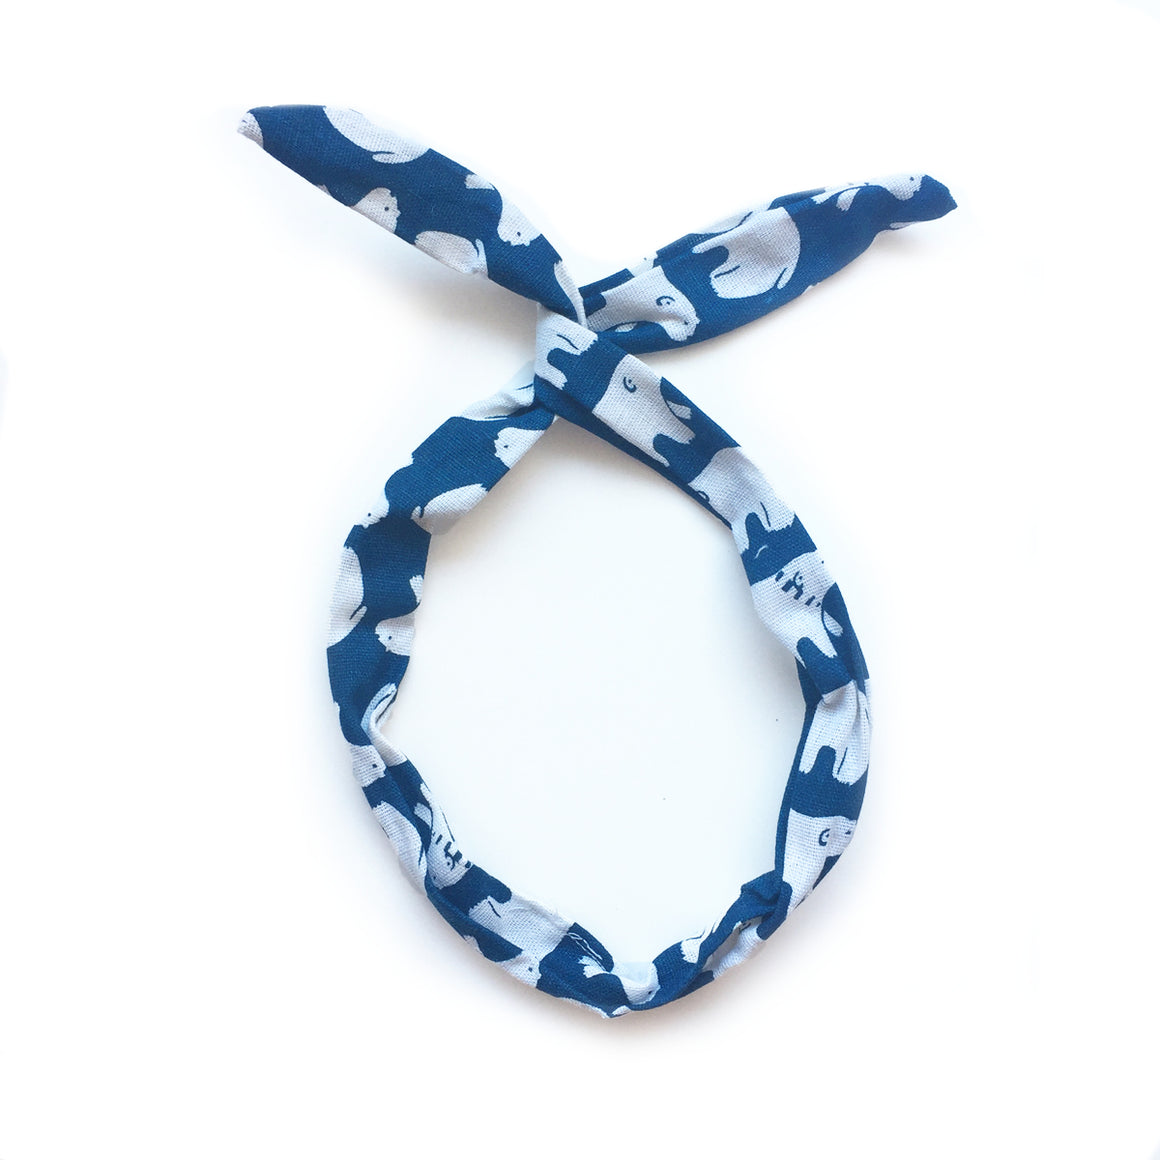 animal twist headband // hello shiso hair accessories for girls